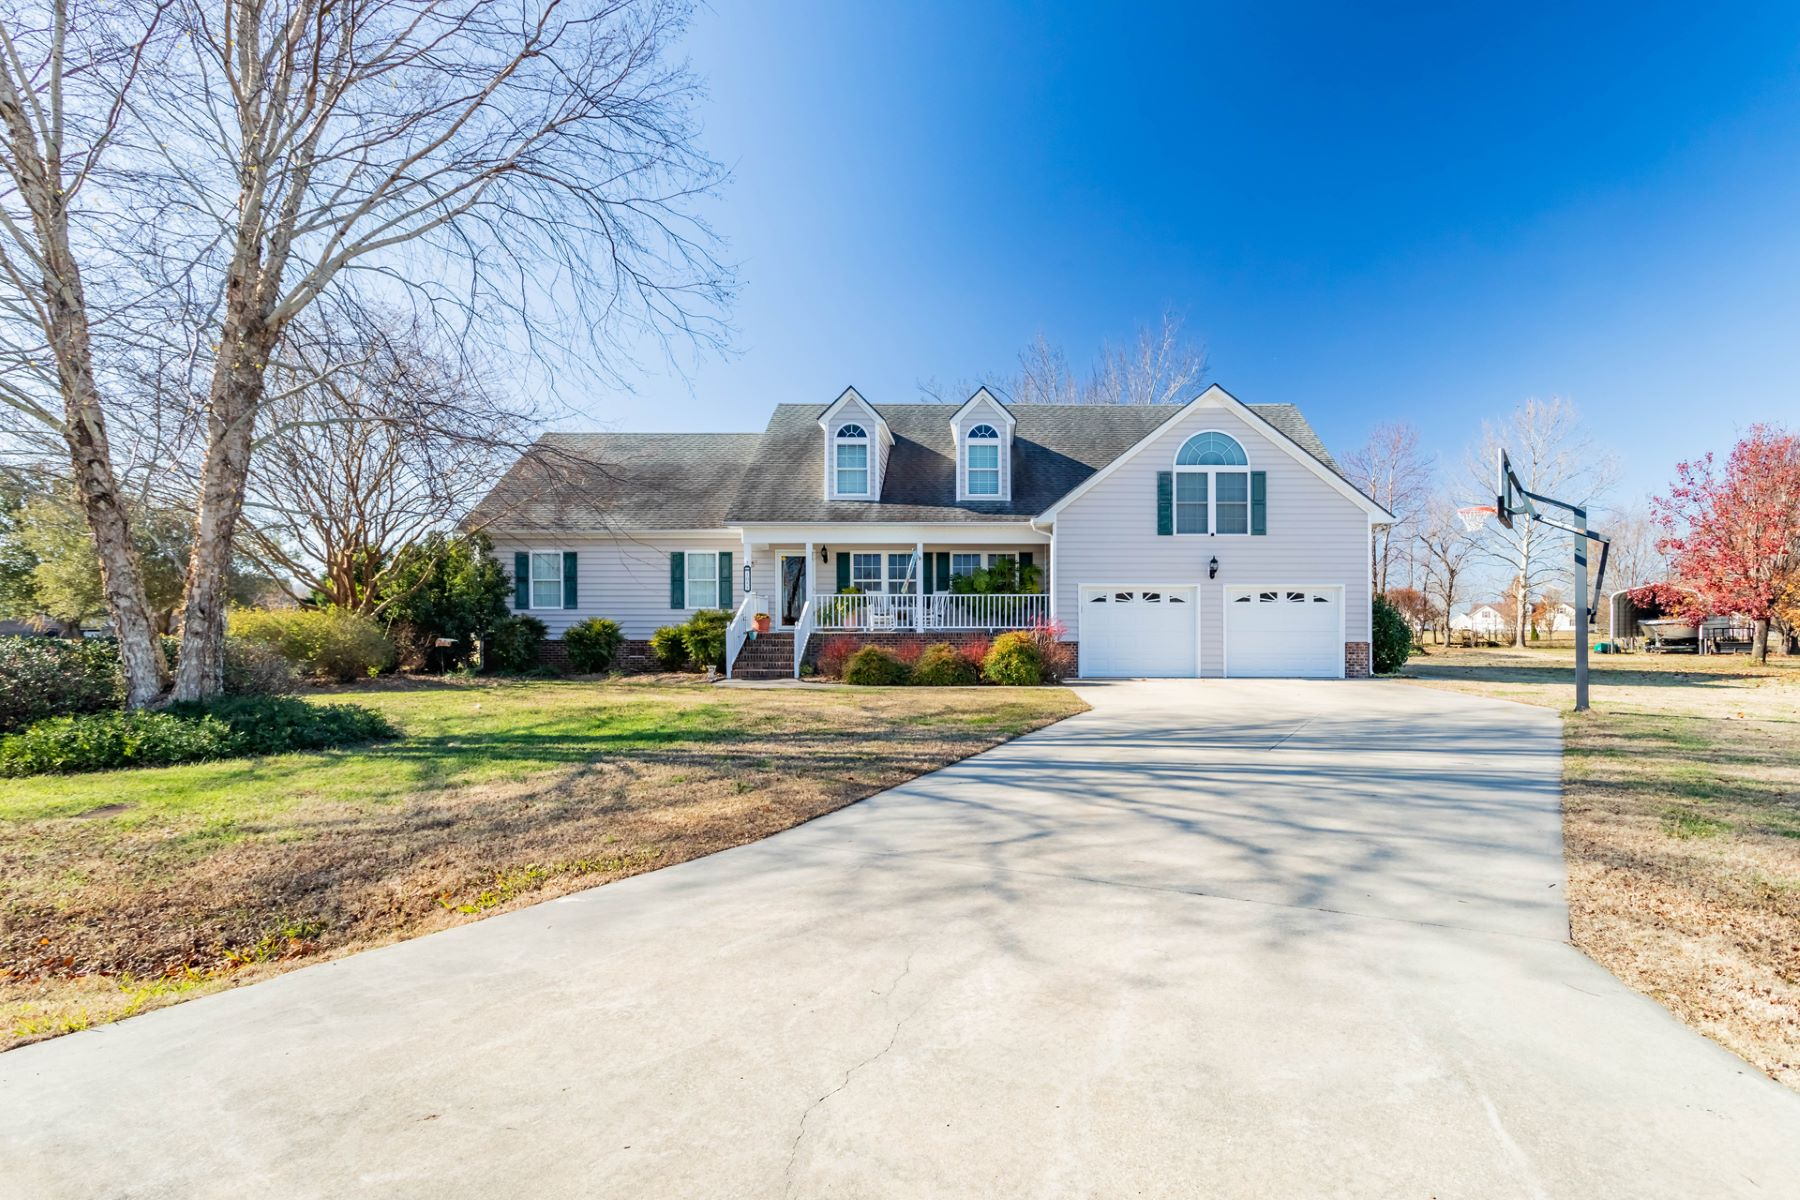 Single Family Homes for Sale at Peartree Place 105 Bradley Drive Elizabeth City, North Carolina 27909 United States